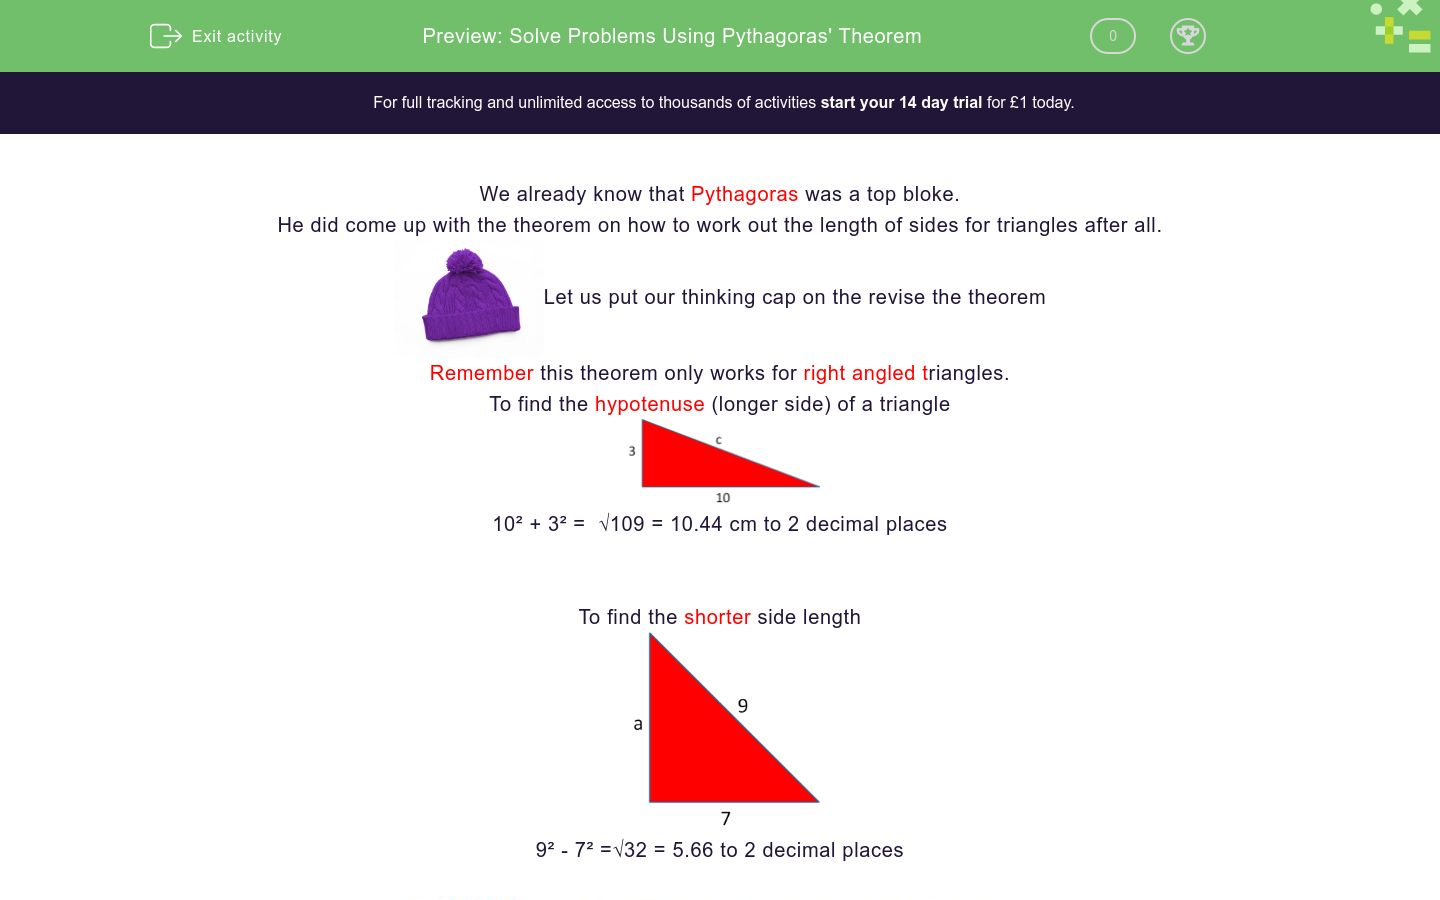 'Solve Problems Using Pythagoras' Theorem' worksheet